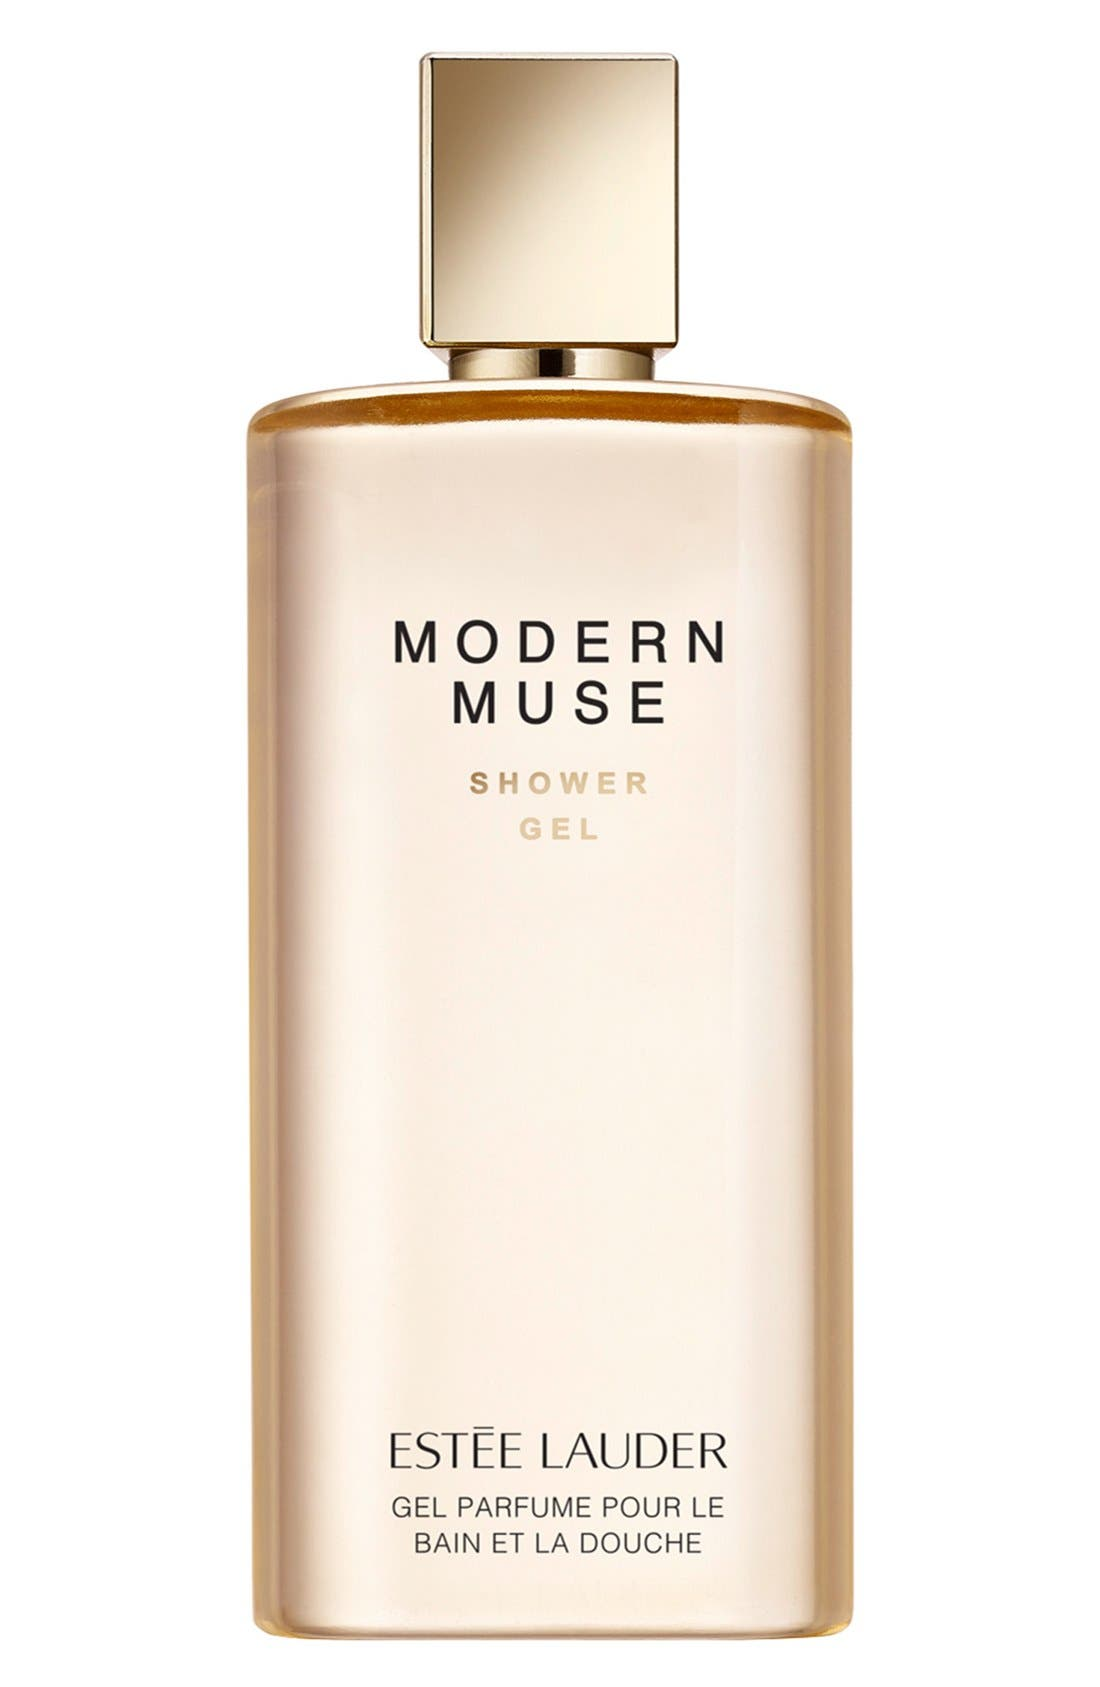 Estée Lauder Modern Muse Shower Gel